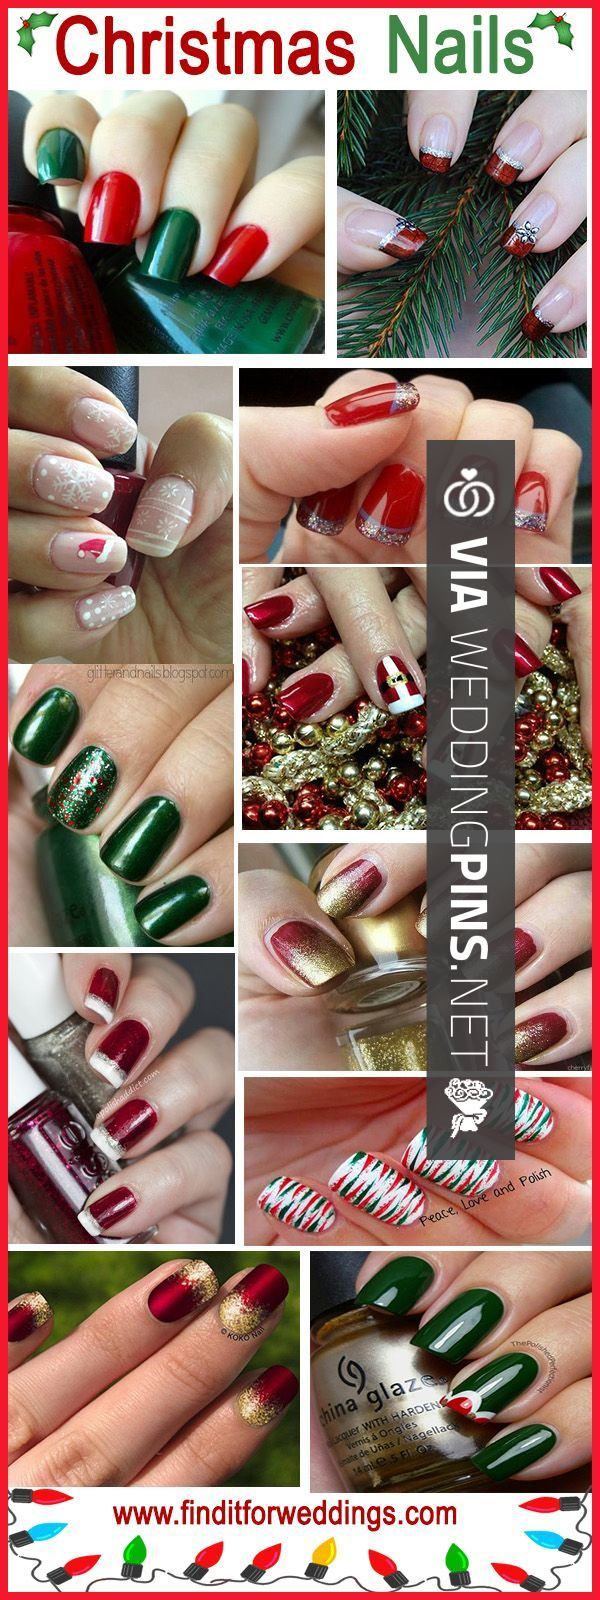 Amazing -  | CHECK OUT MORE TO DIE FOR PICS OF TASTY Wedding Nails 2016 OVER AT…